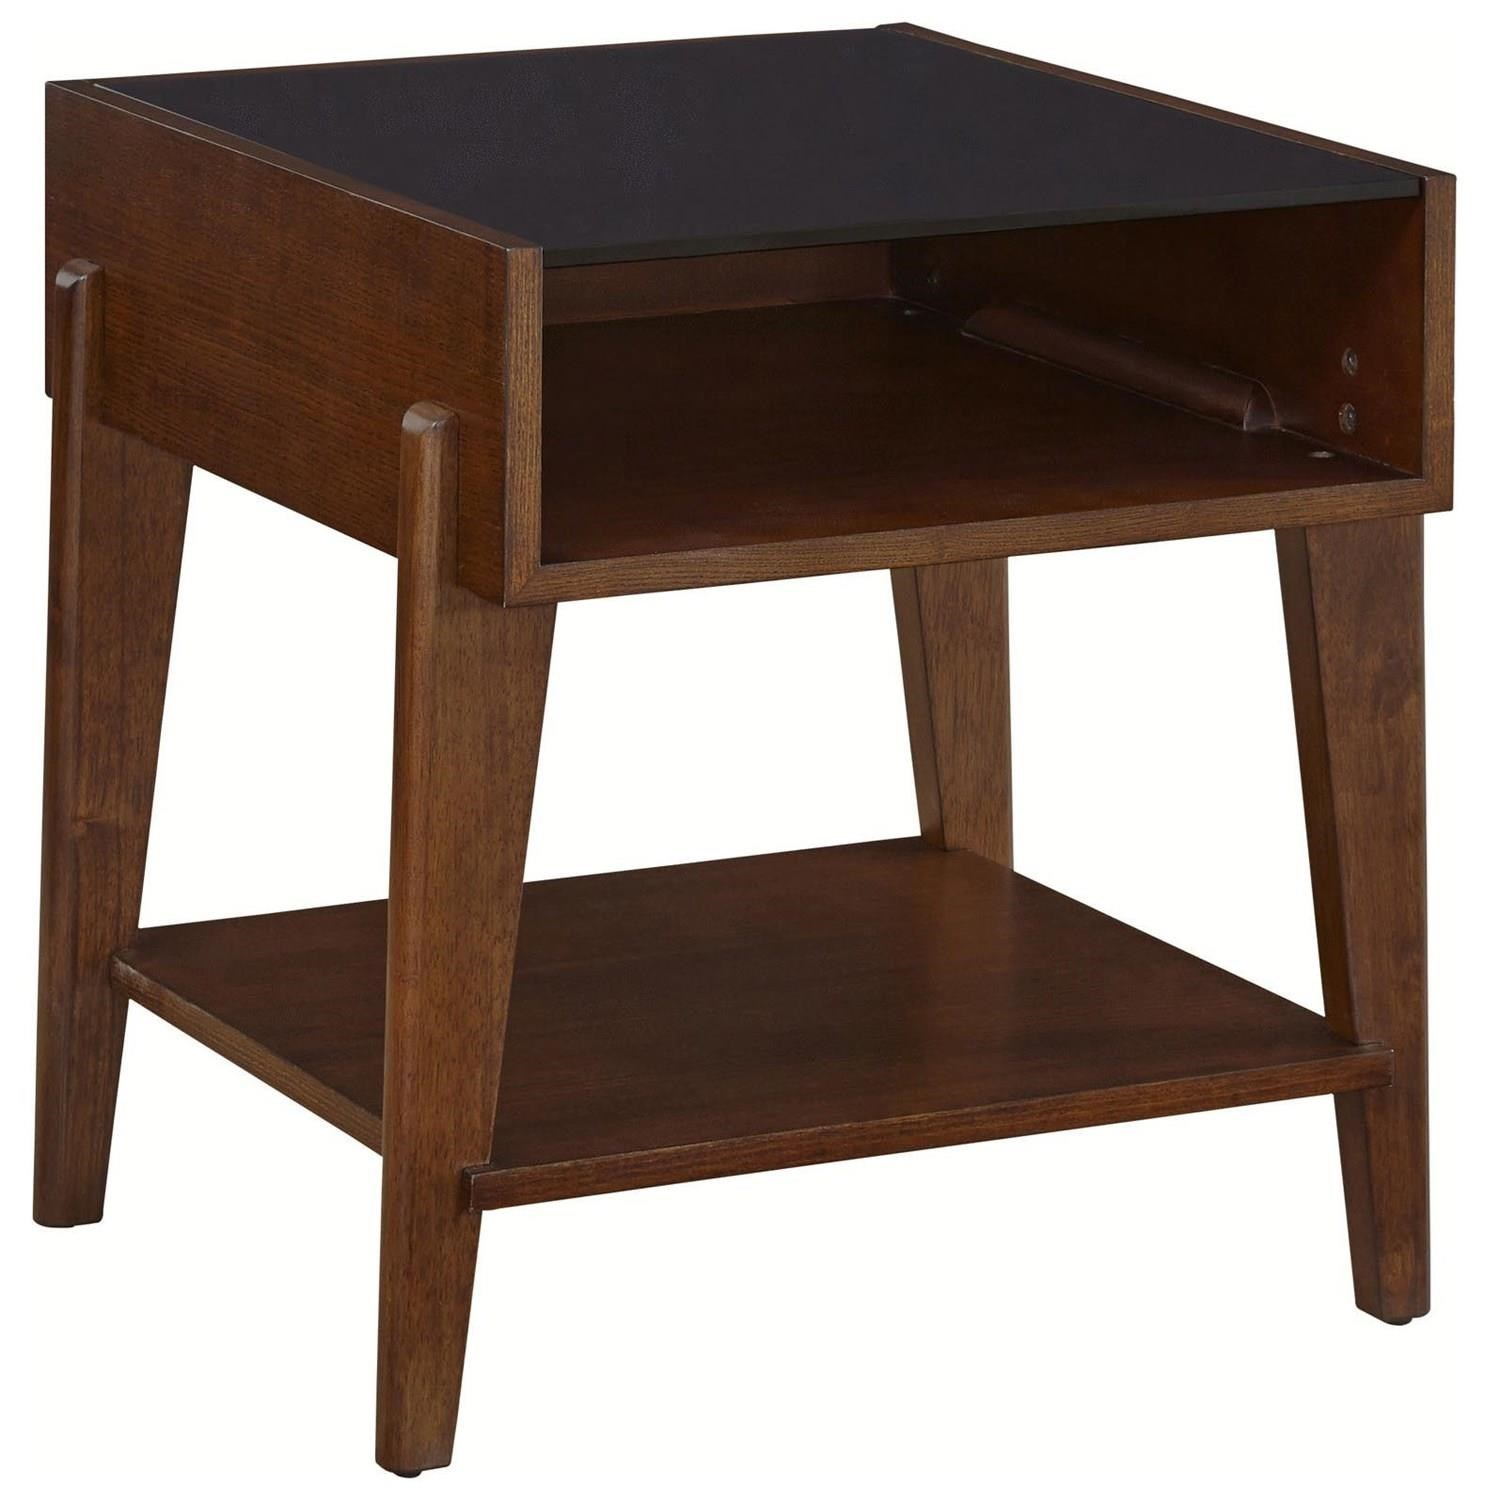 Centertown end table morris home end tables Morris home furniture hours